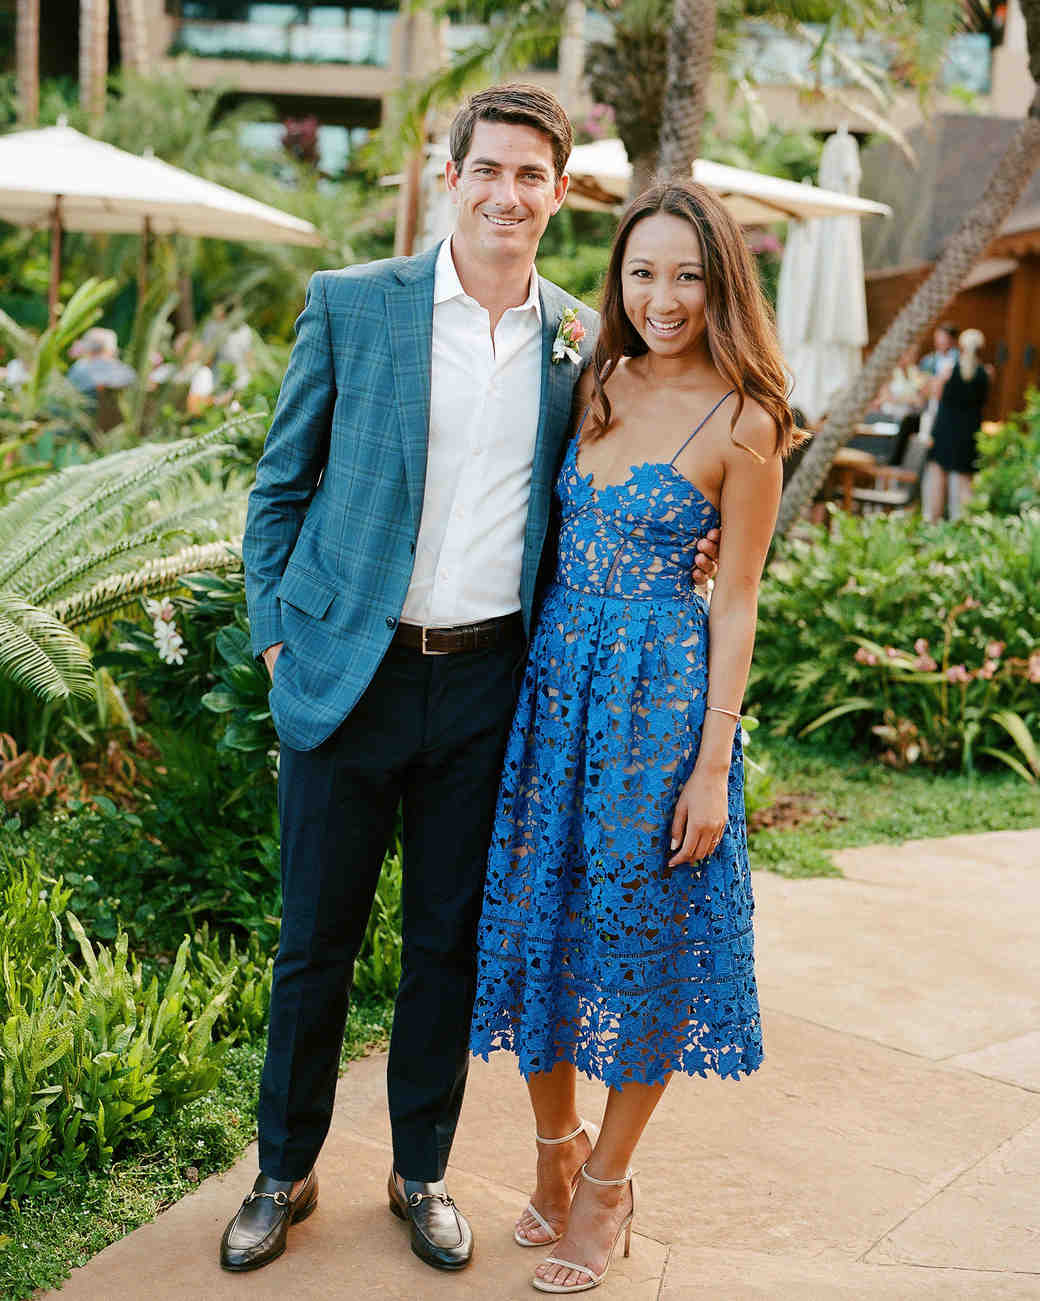 22 Best-Dressed Summer Wedding Guests | Martha Stewart Weddings